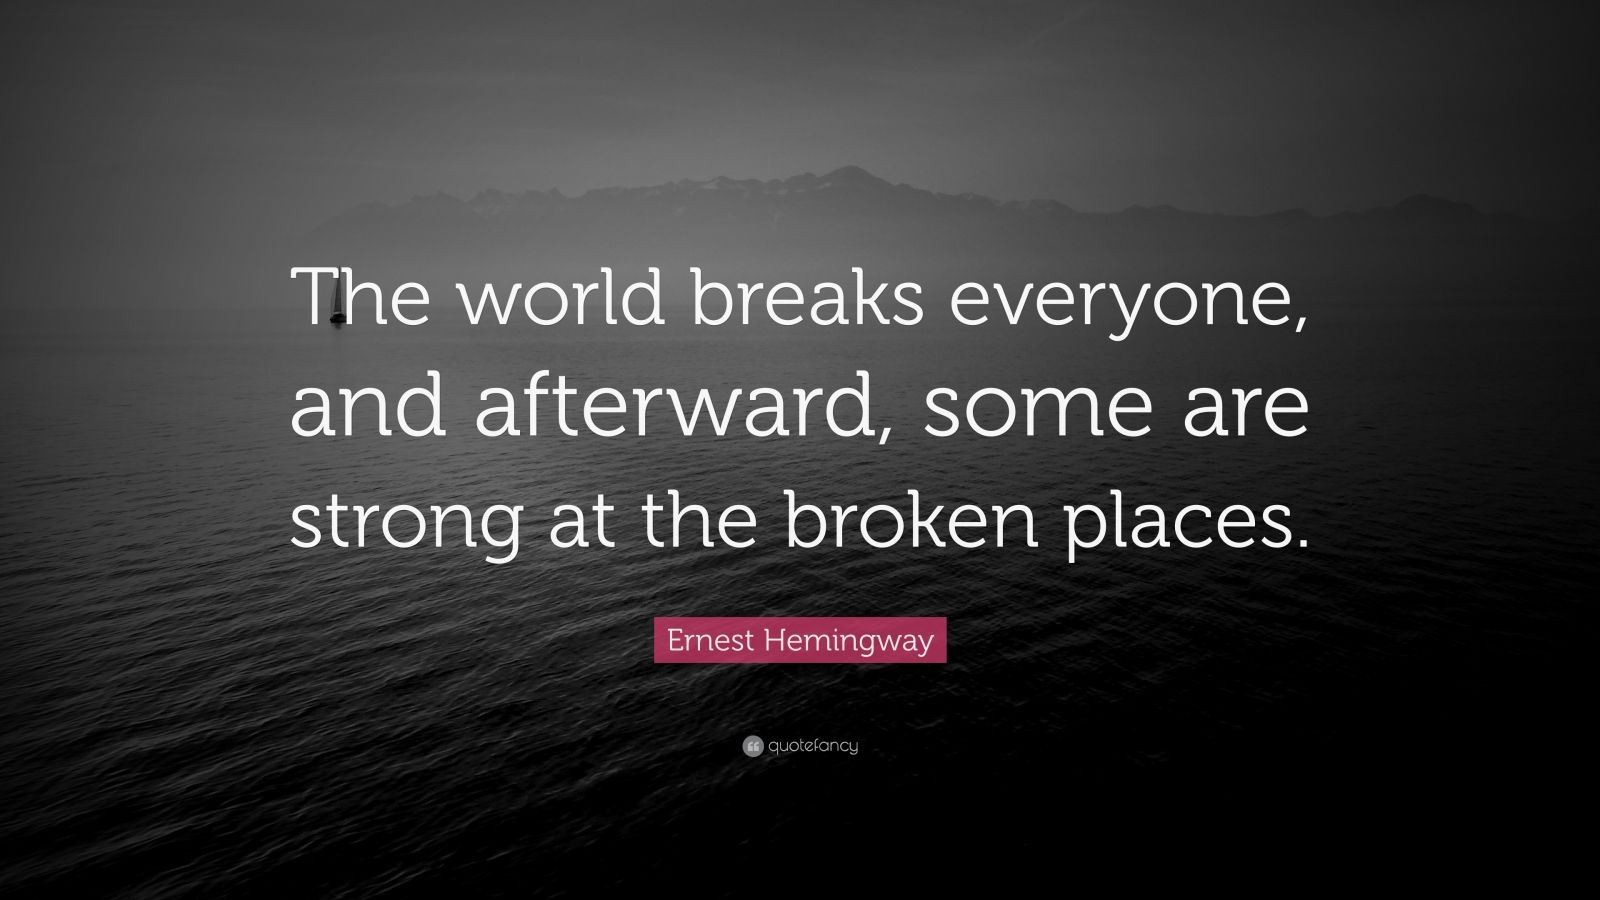 Reading Quotes Wallpaper Ernest Hemingway Quote The World Breaks Everyone And